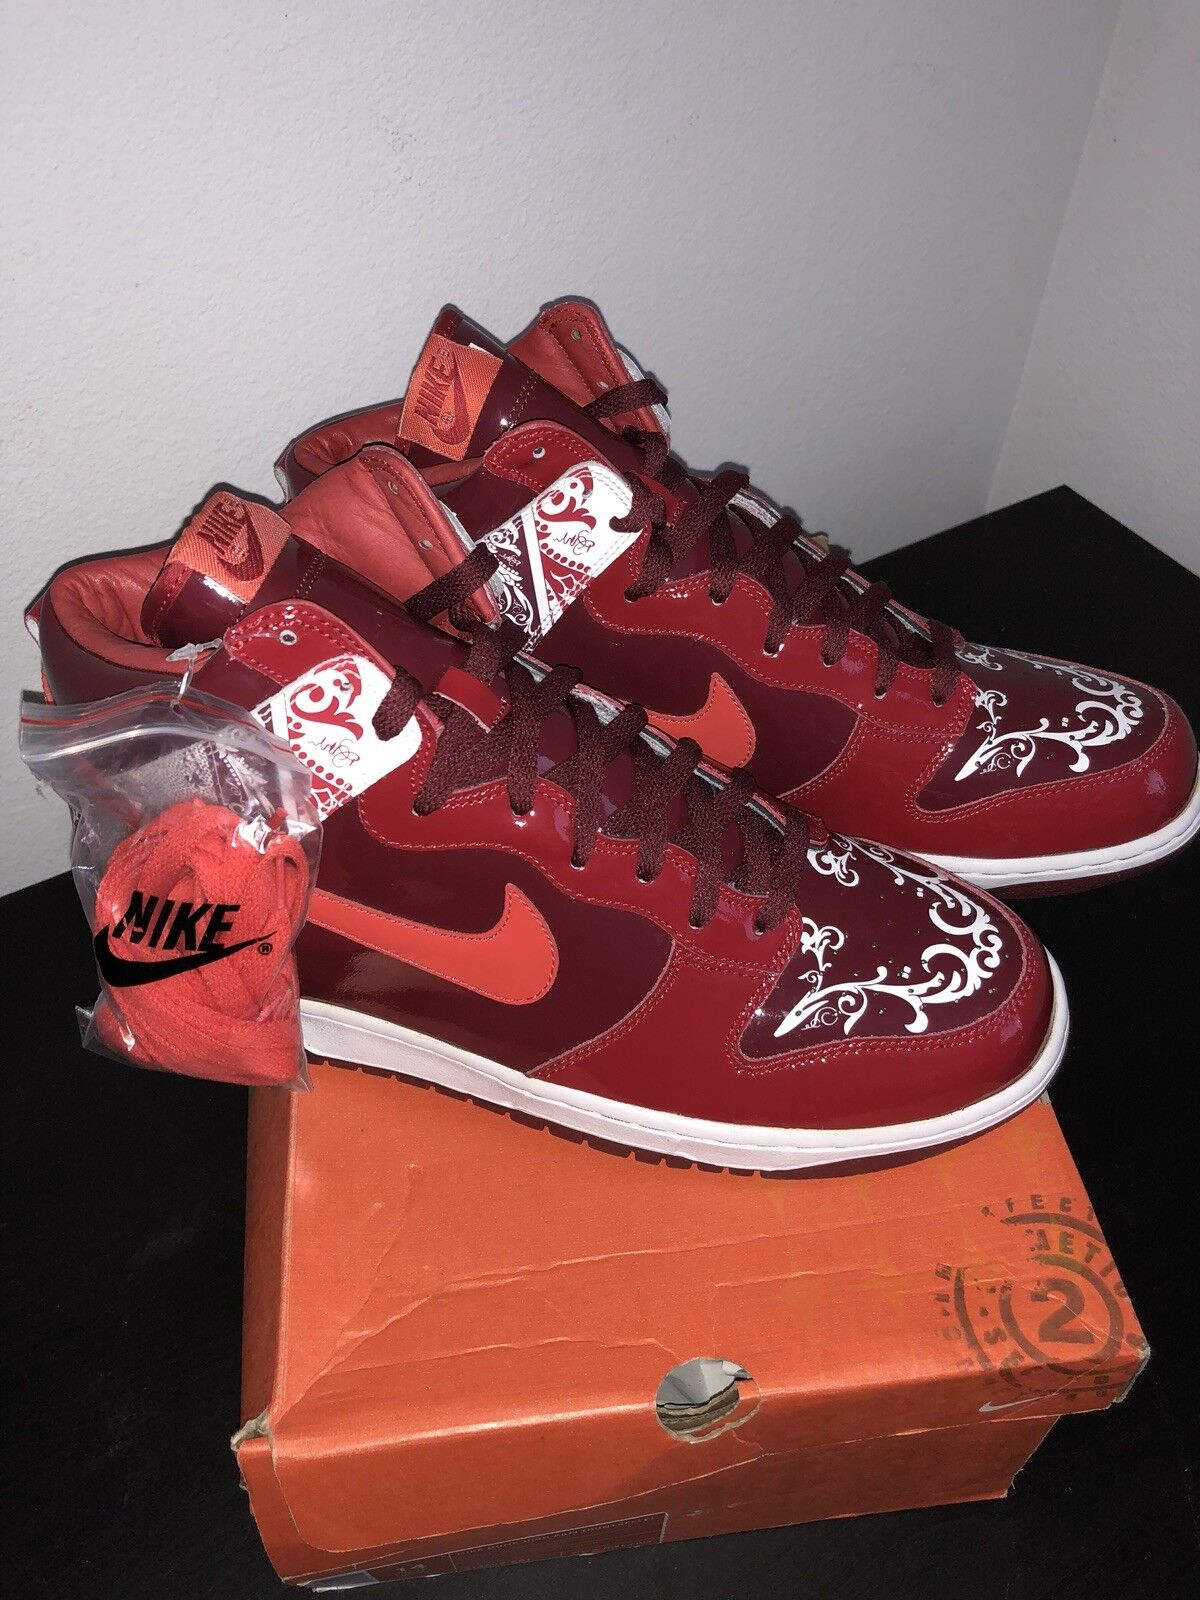 Deadstock Rare Nike Dunk High Dontrelle Willis Red color way. Men's Size 14